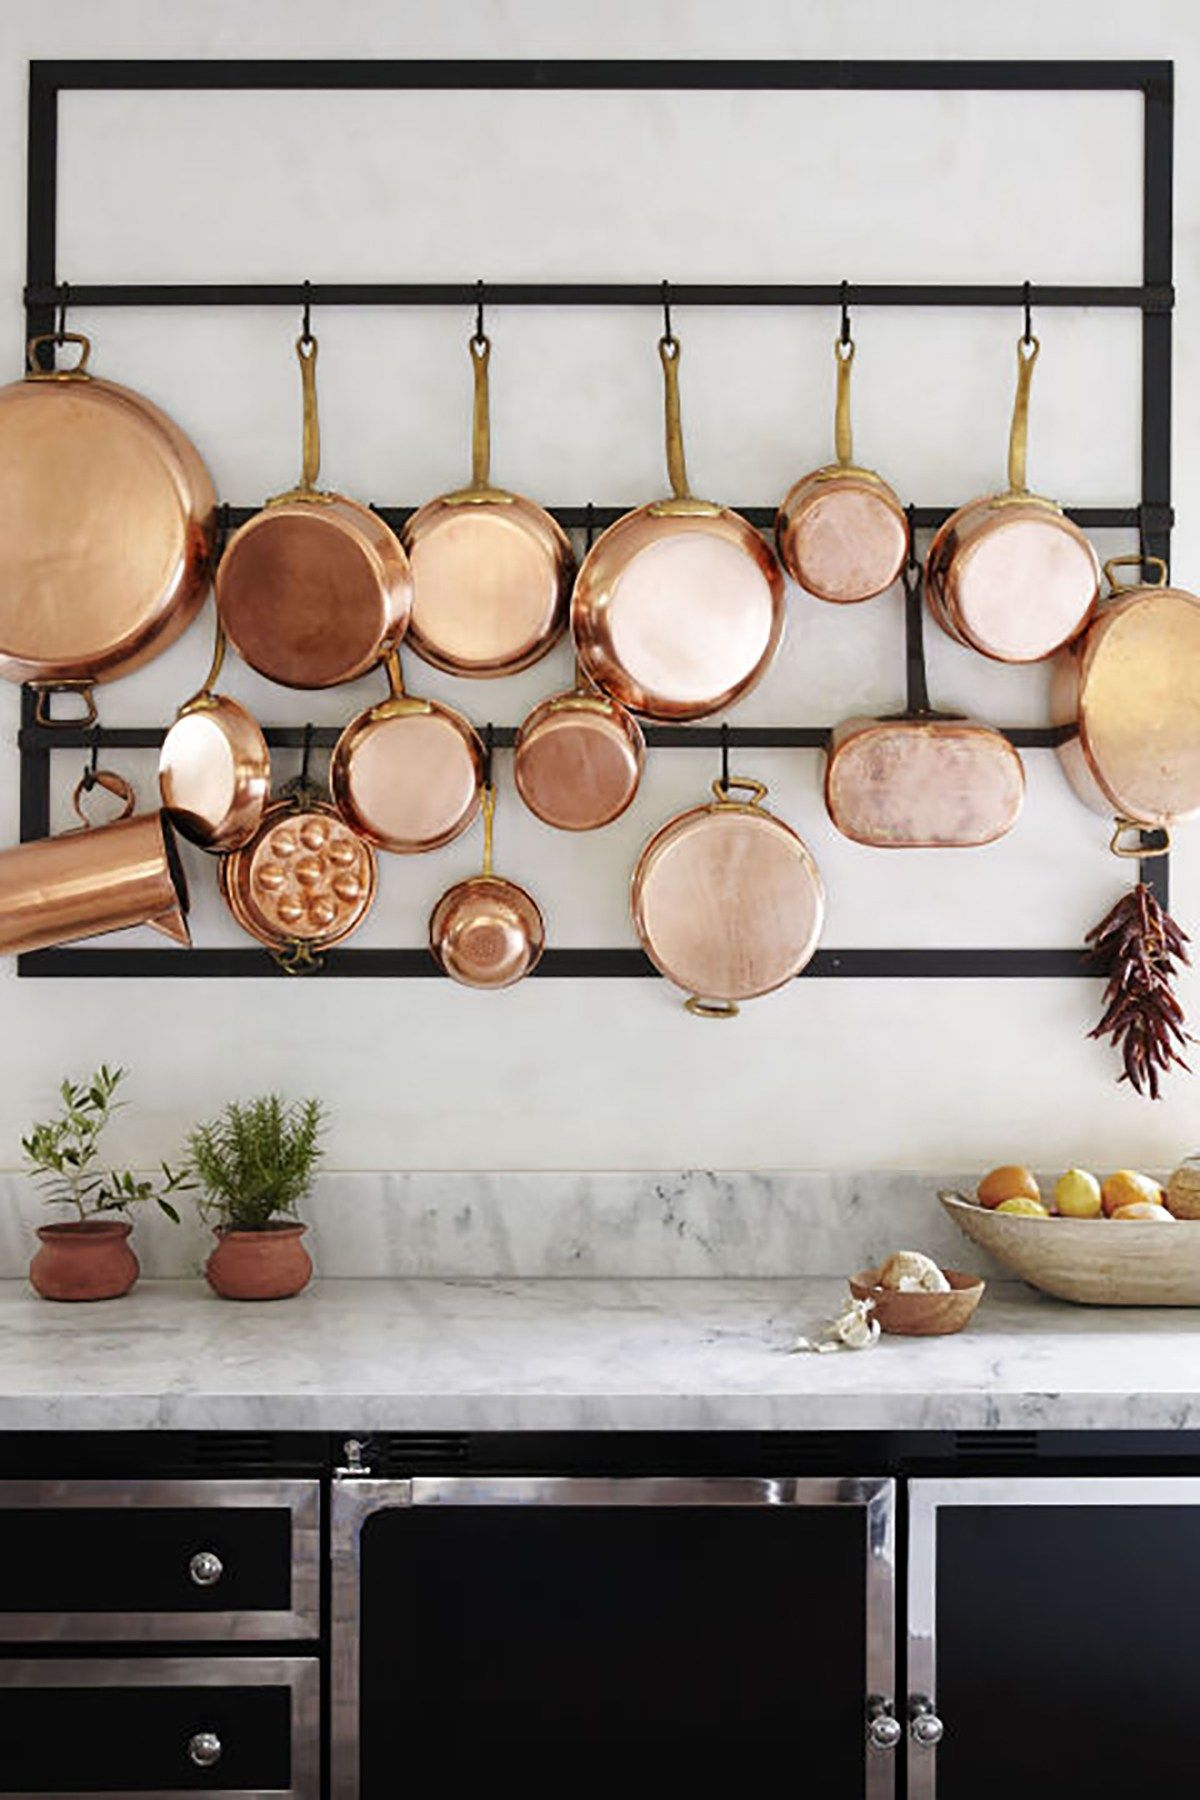 5 Kitchens That Inspire Large Hanging Rack For Copper Pans Interior Design Kitchen Kitchen Remodel Home Decor Accessories